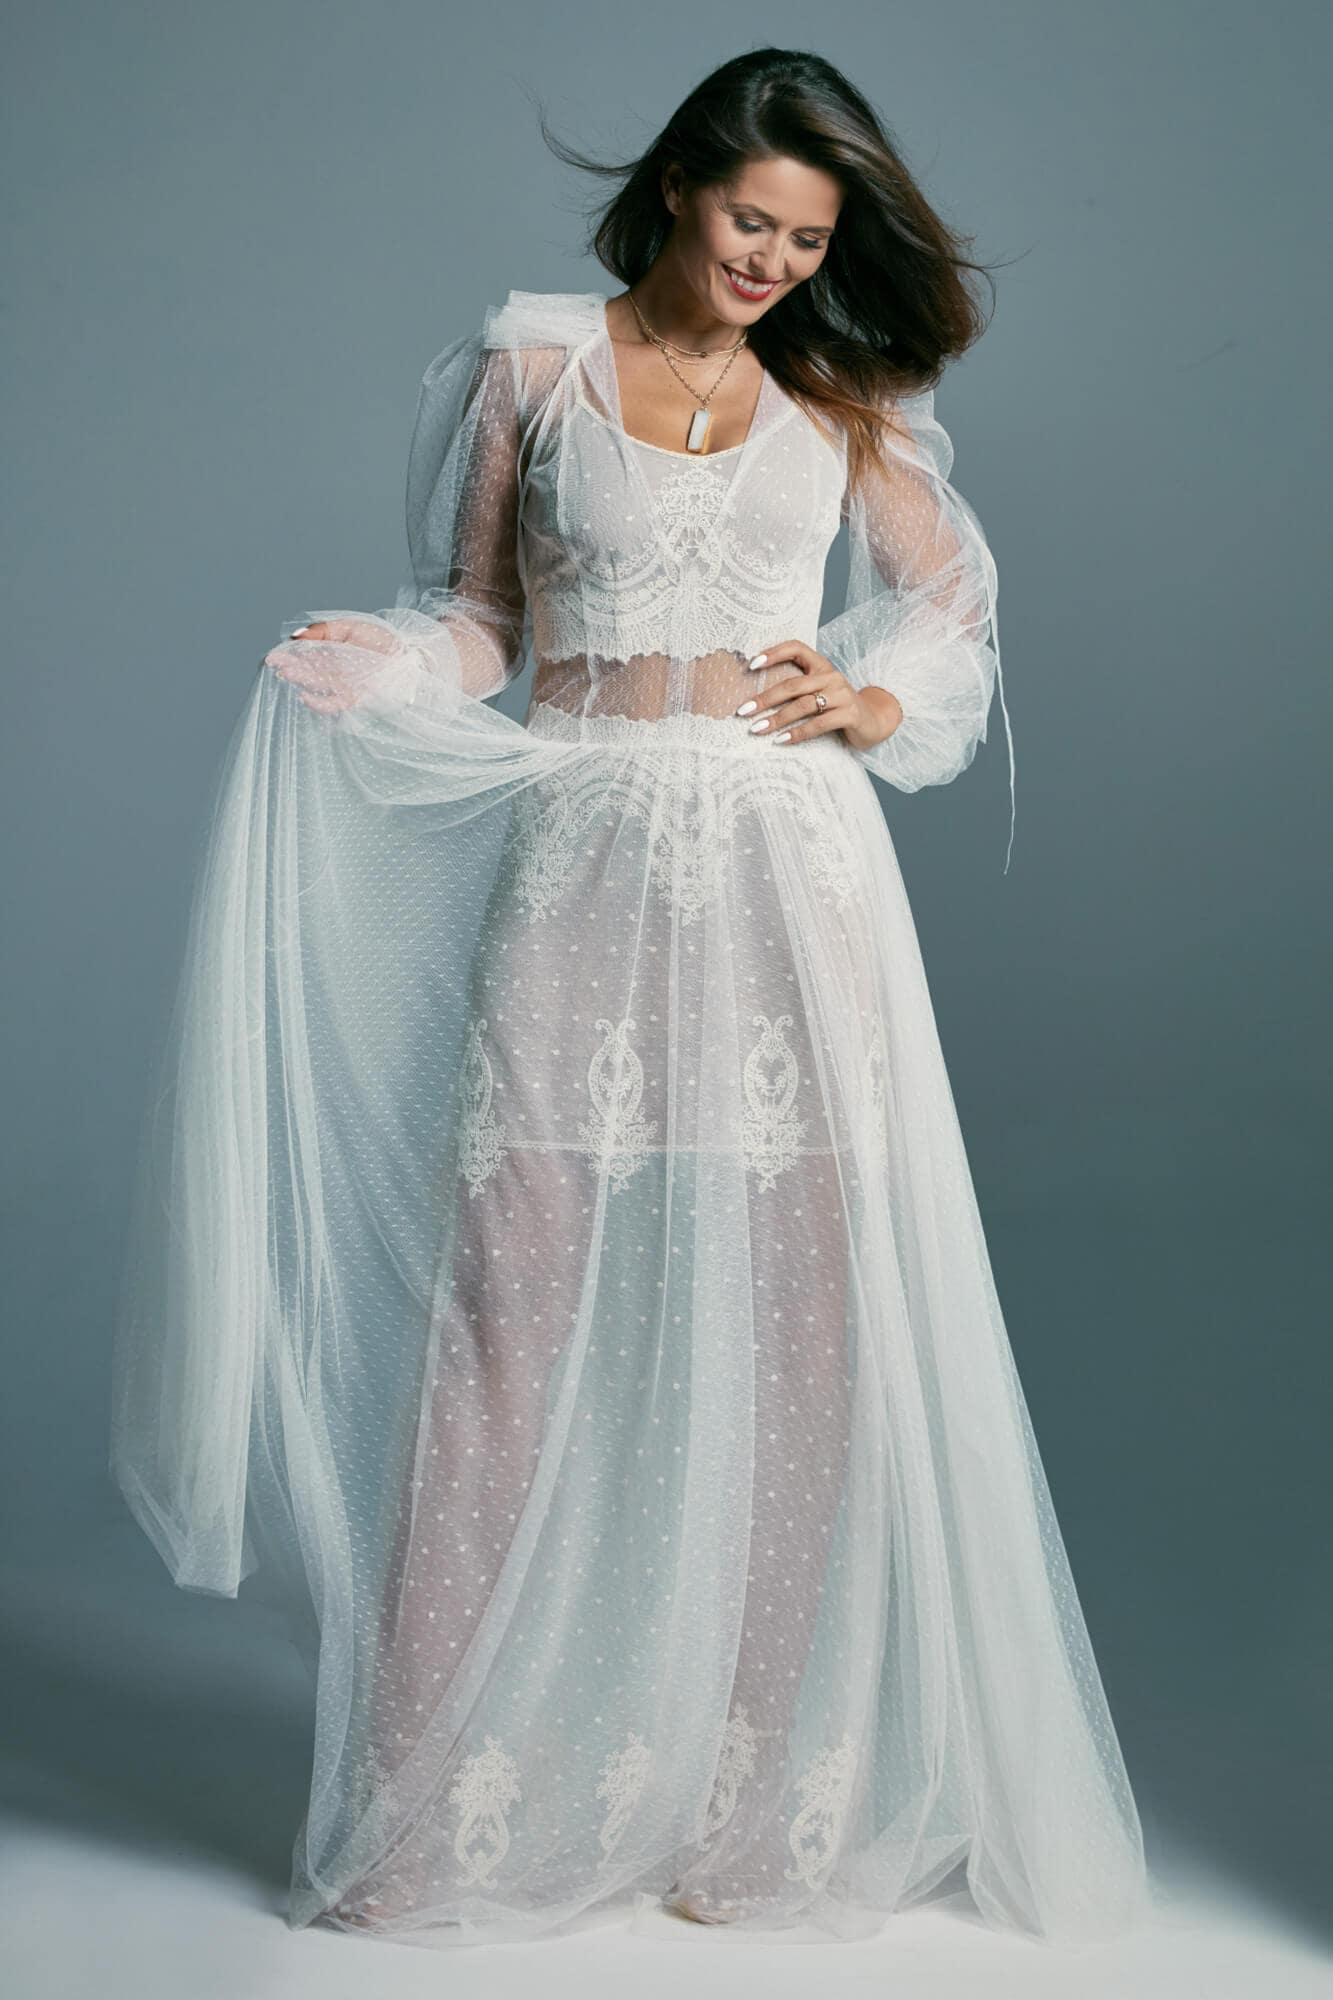 A beautiful wedding dress in a retro style covered with a delicate tulle Barcelona 20